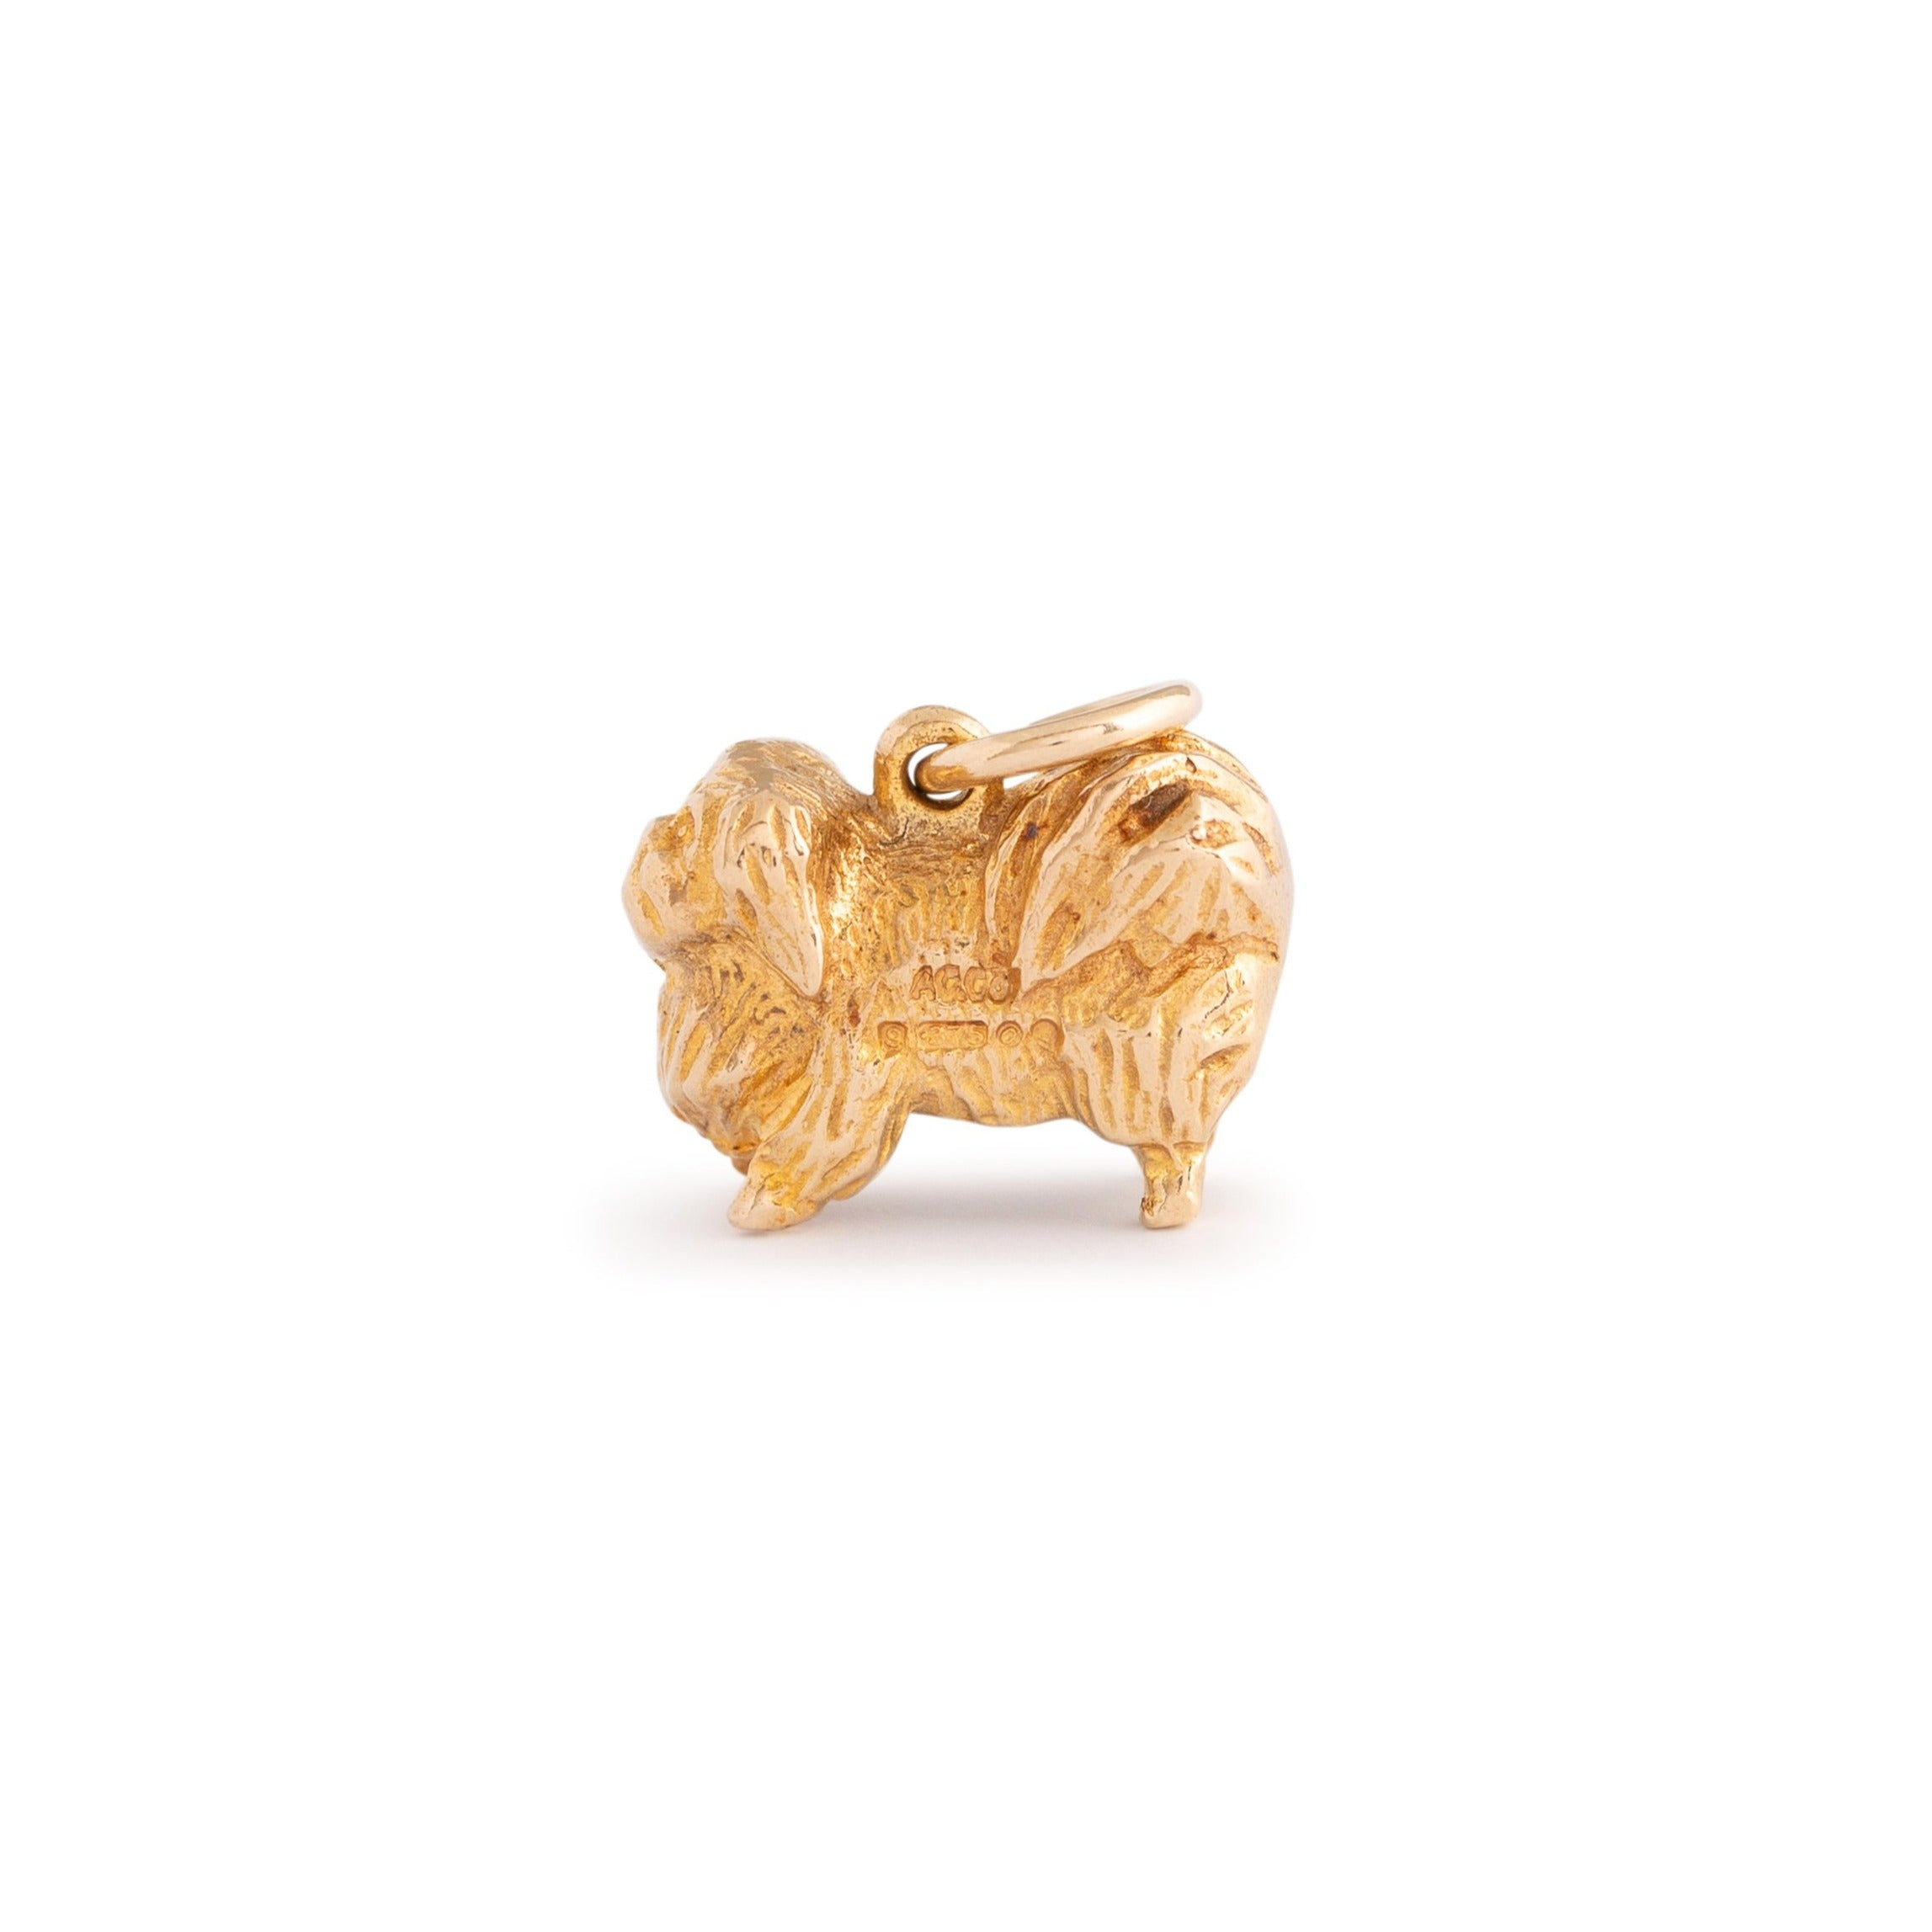 English Pekinese 9k Gold Dog Charm